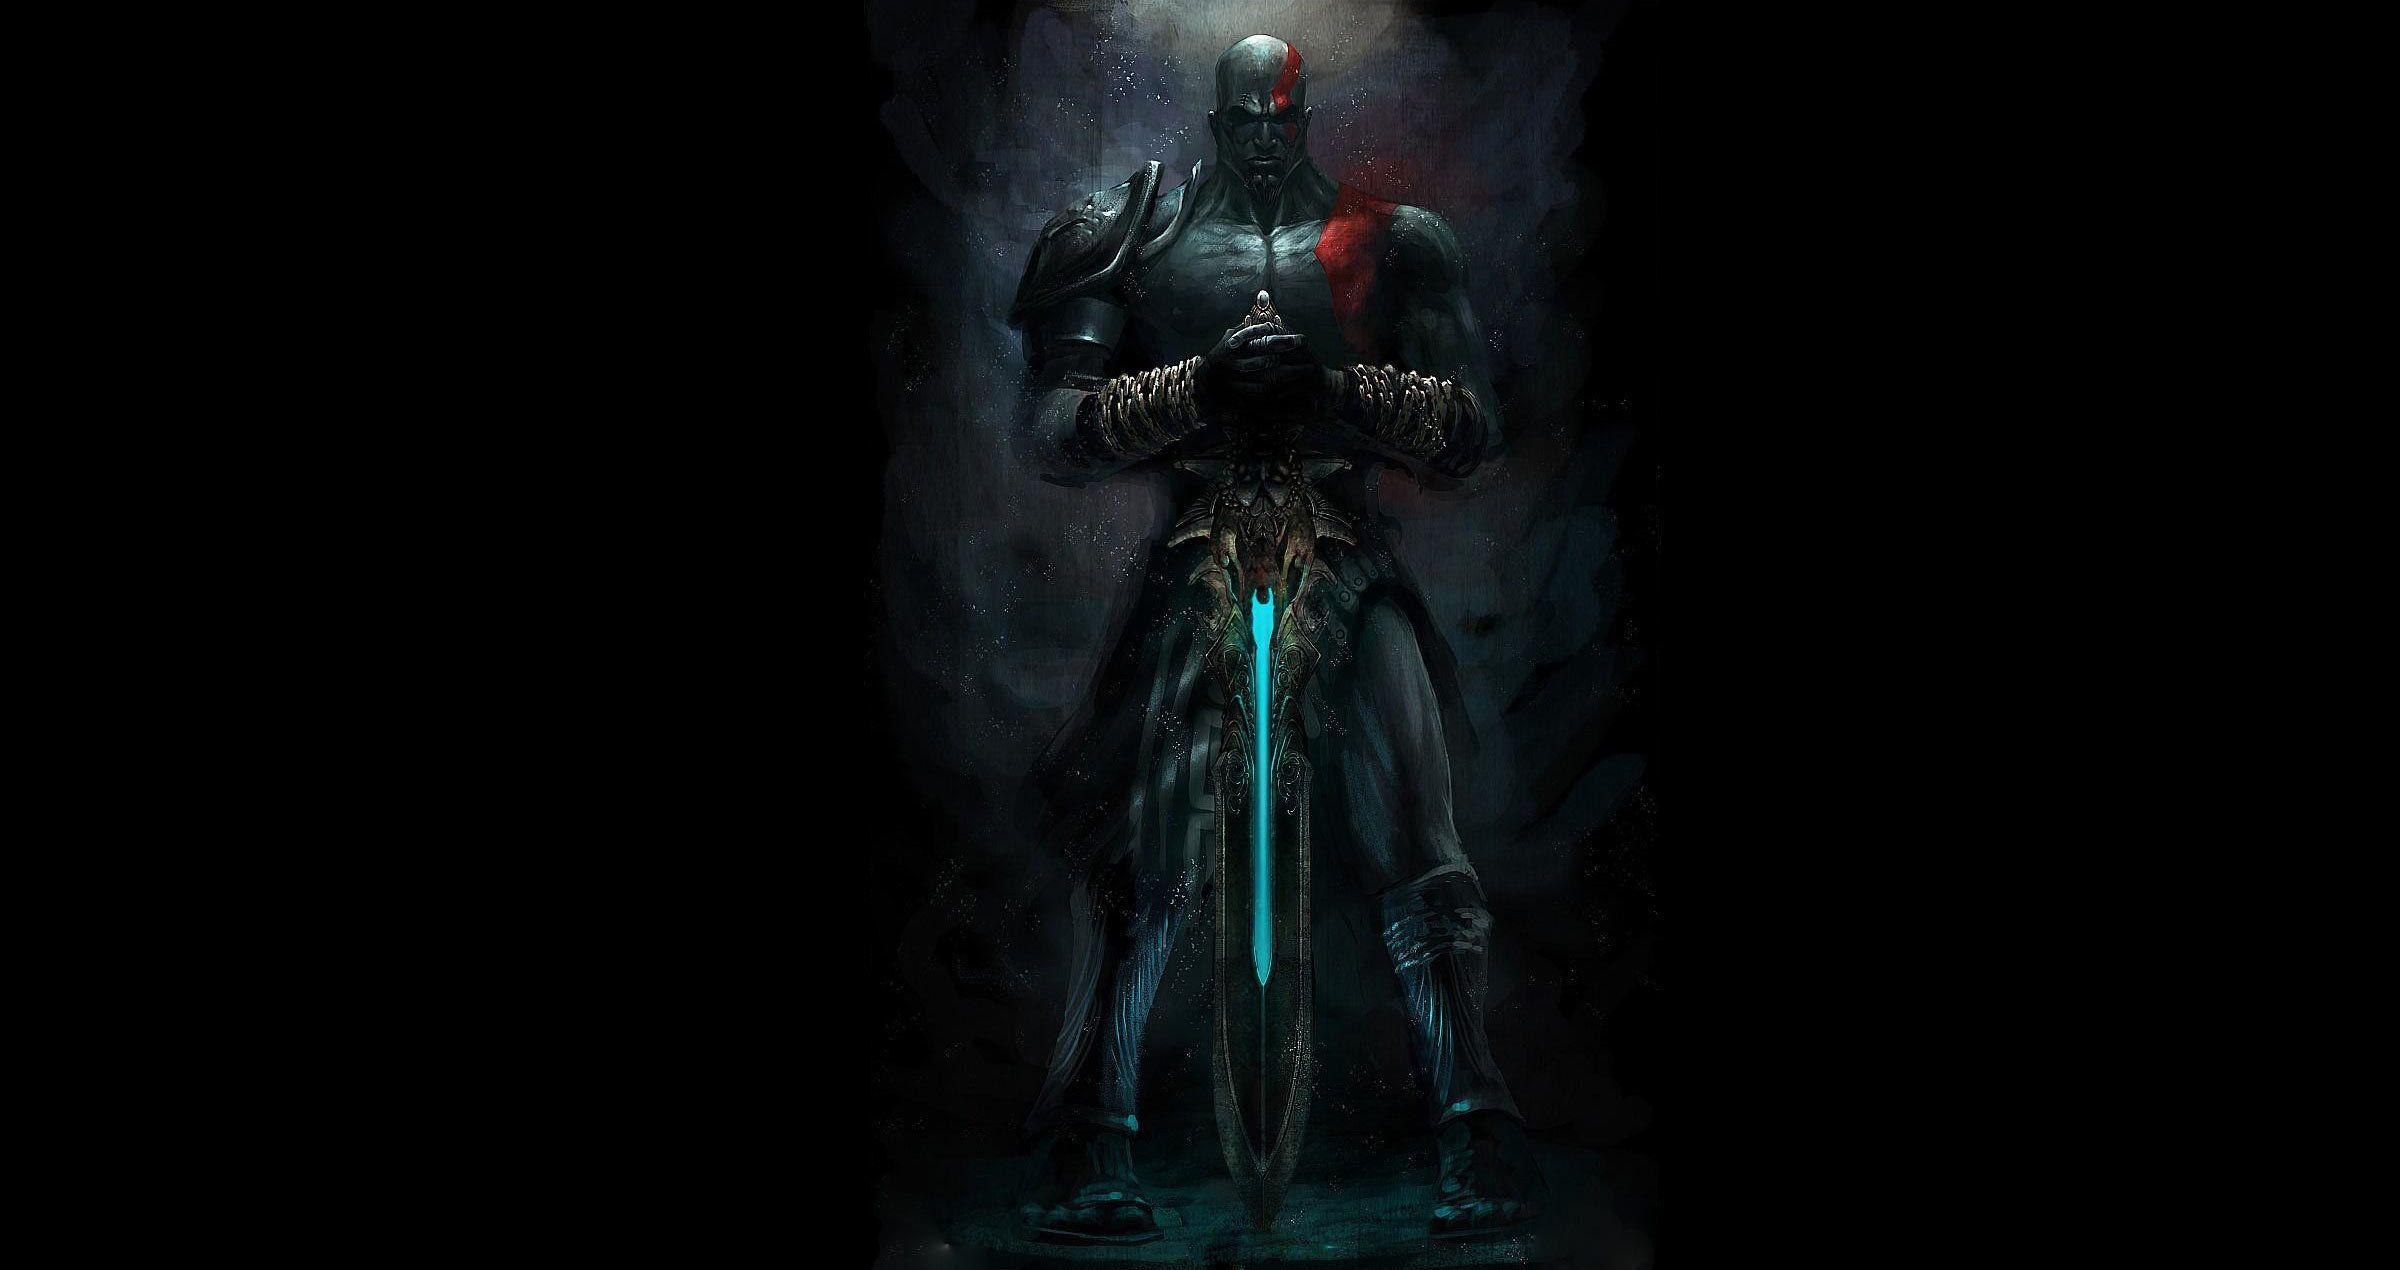 38 God Of War III HD Wallpapers | Backgrounds - Wallpaper Abyss